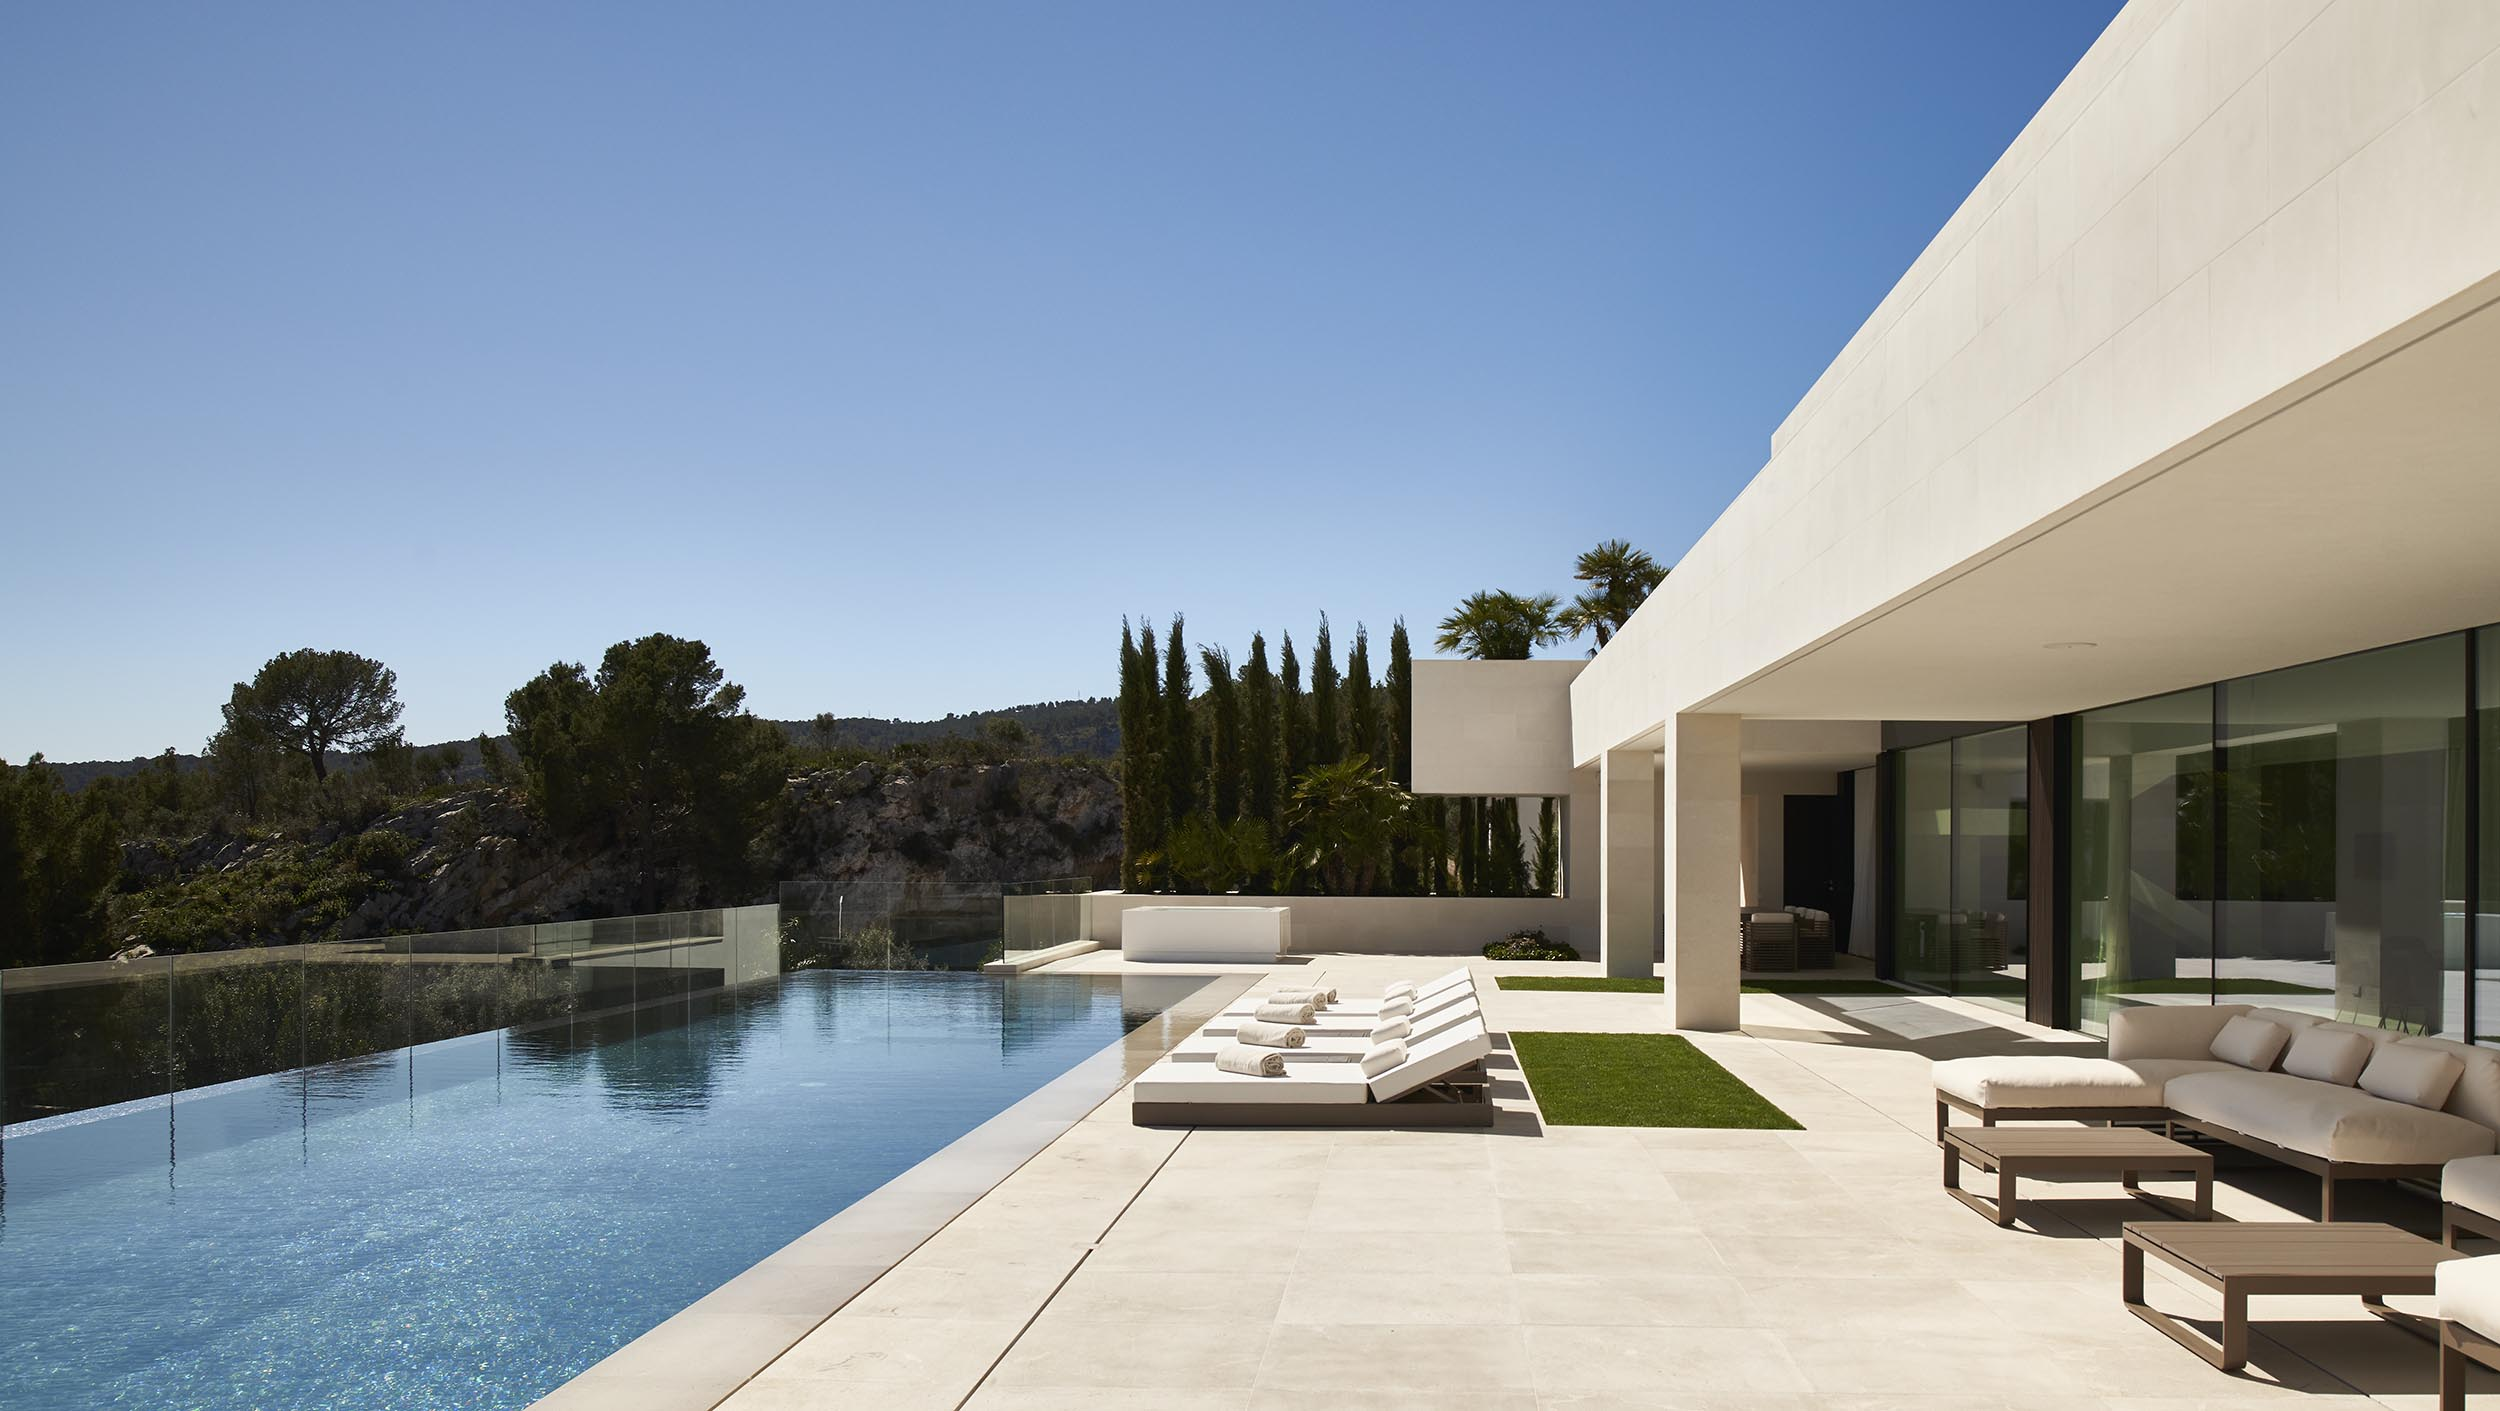 3-mallorca-art-sanchez-architecture-interior-design-photoraphy-video.jpg